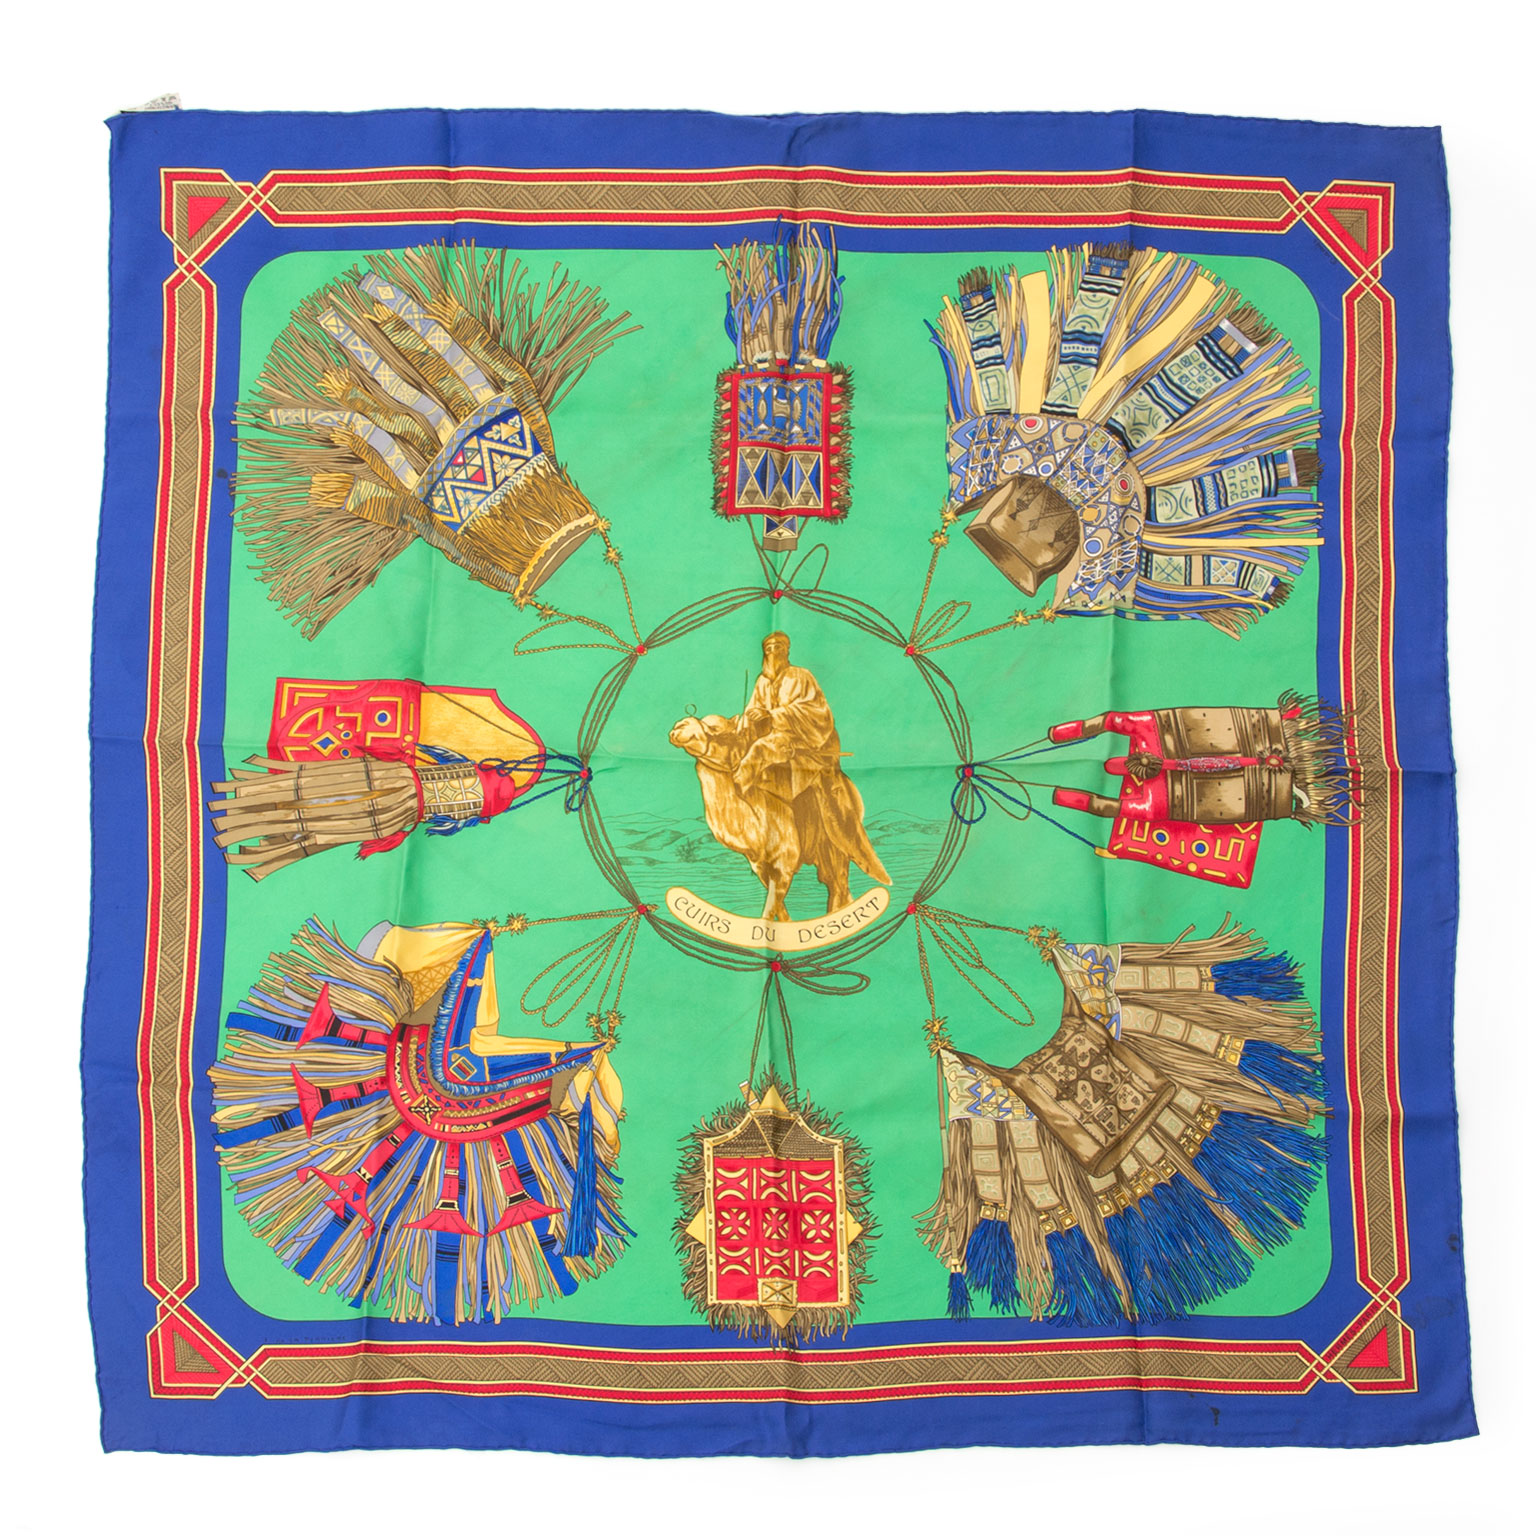 af4aaa1fcabd ... Preowned Hermès Silk Carré Scarf Cuirs Du Desert Green Blue. Buy  authentic secondhand Hermès scarves